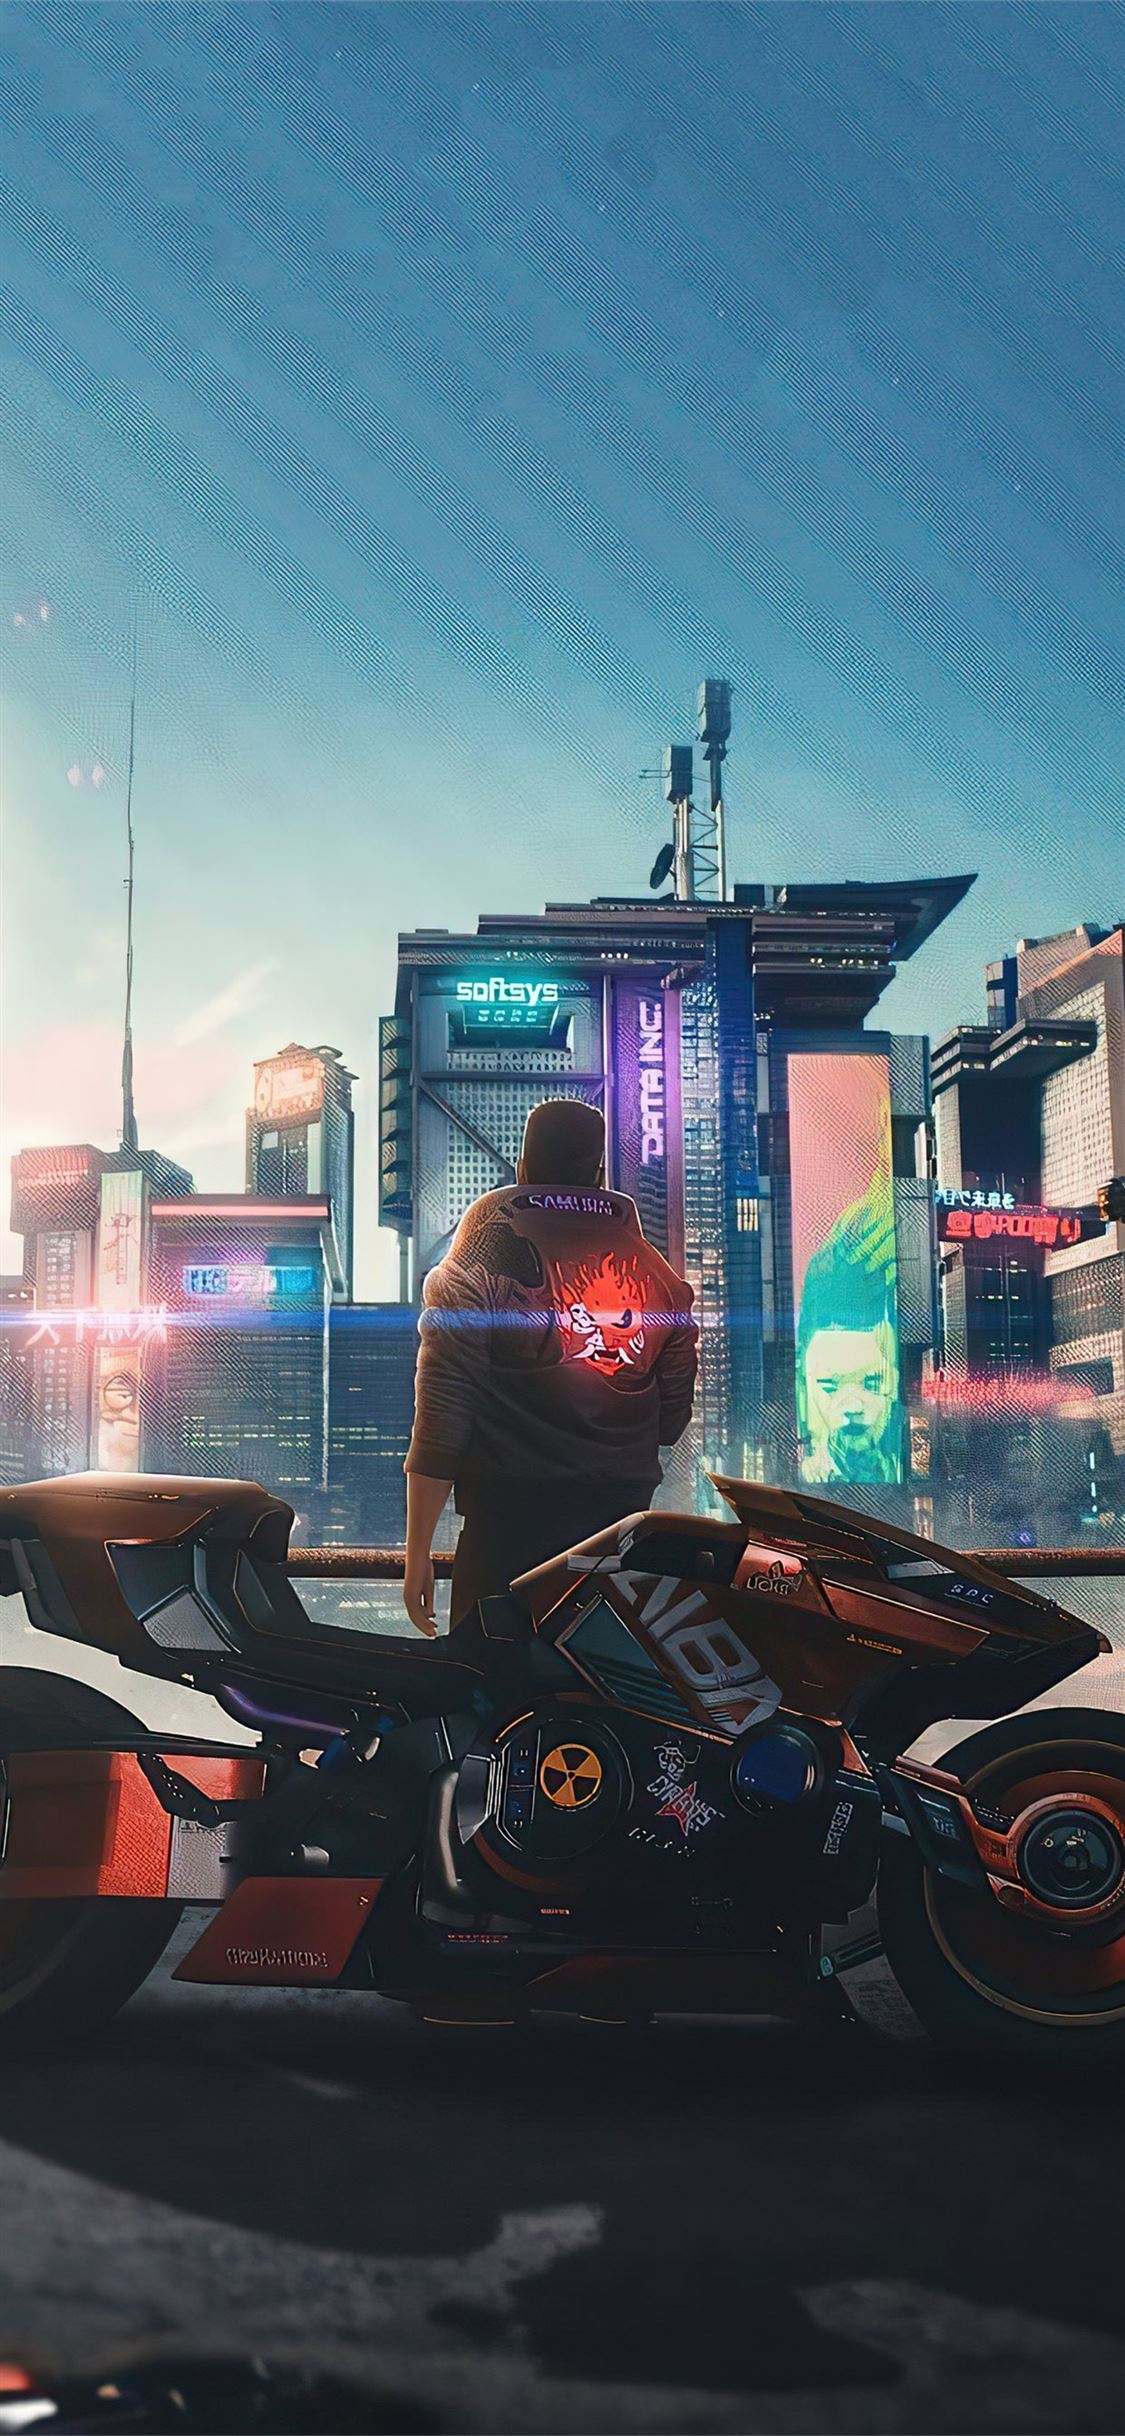 Cyberpunk 2077 Samurai Jacket Iphone X Wallpapers Free Download